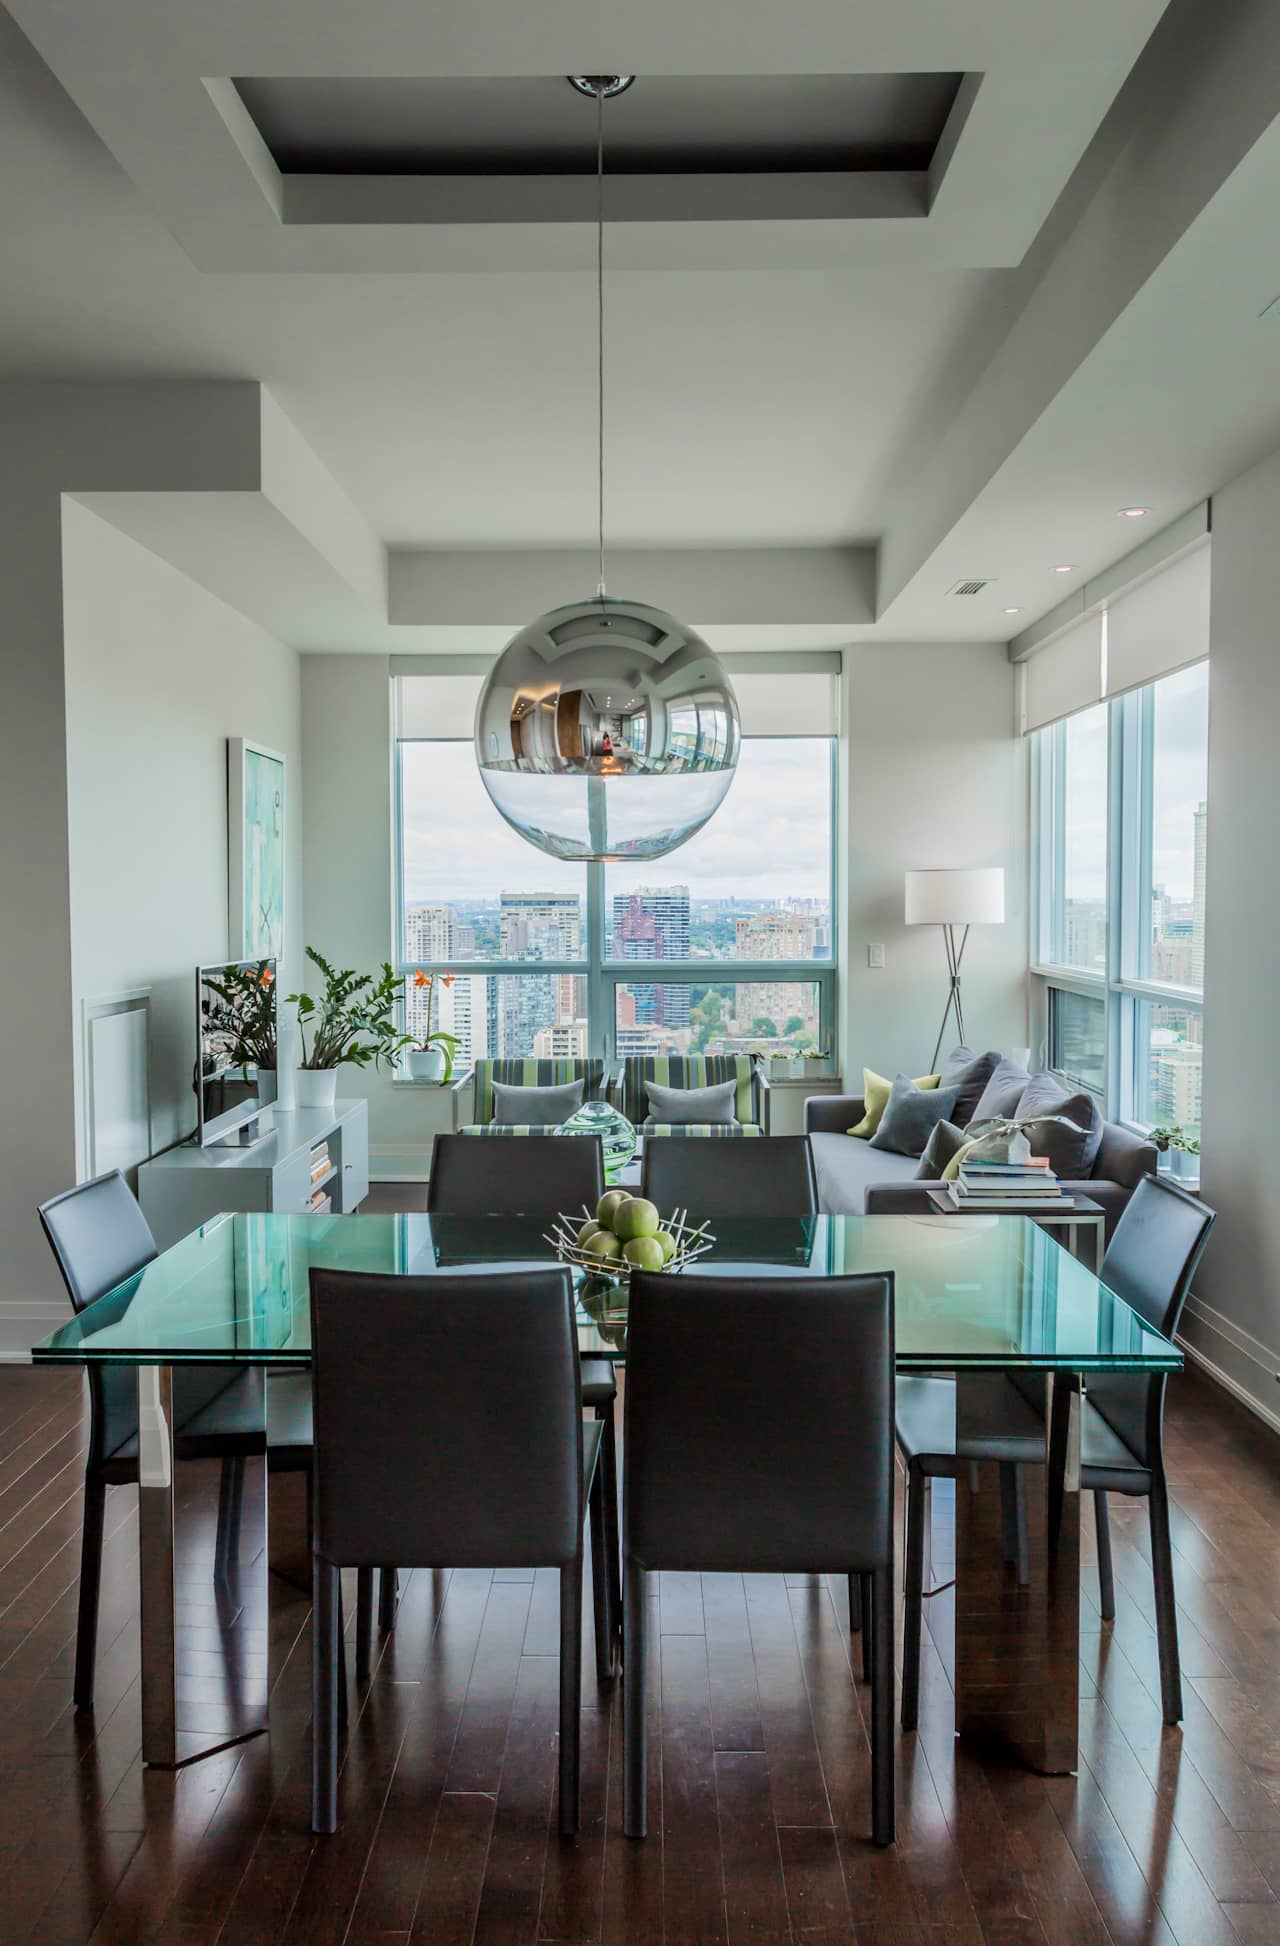 Greg & Rob's Sky Suite: gallery image 3